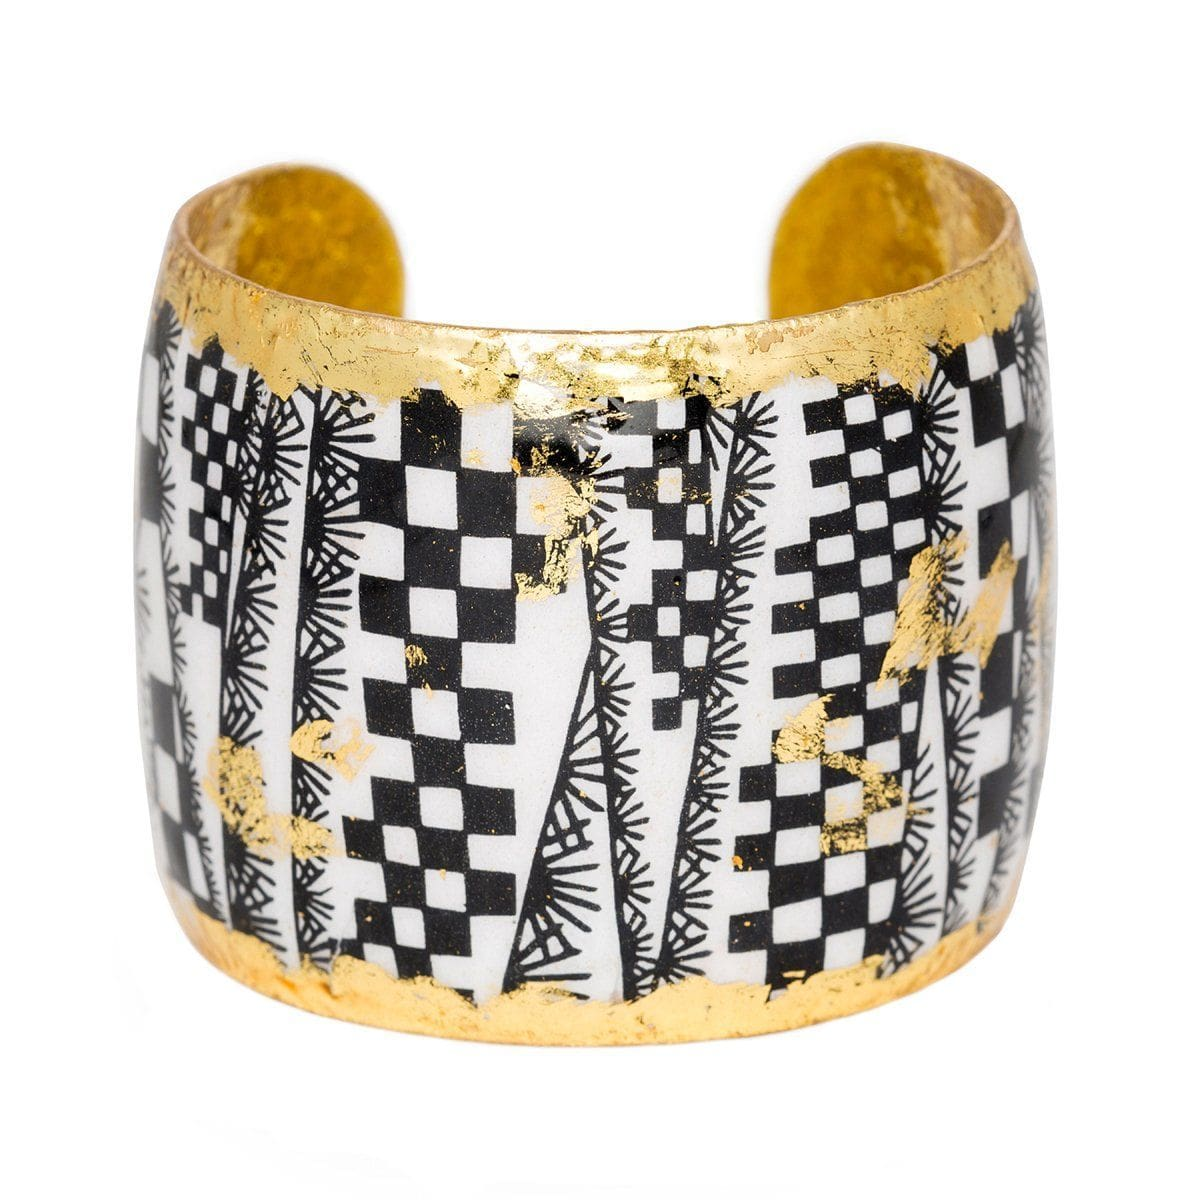 "Checkers 2"" Gold Cuff - BW107-Evocateur-Renee Taylor Gallery"